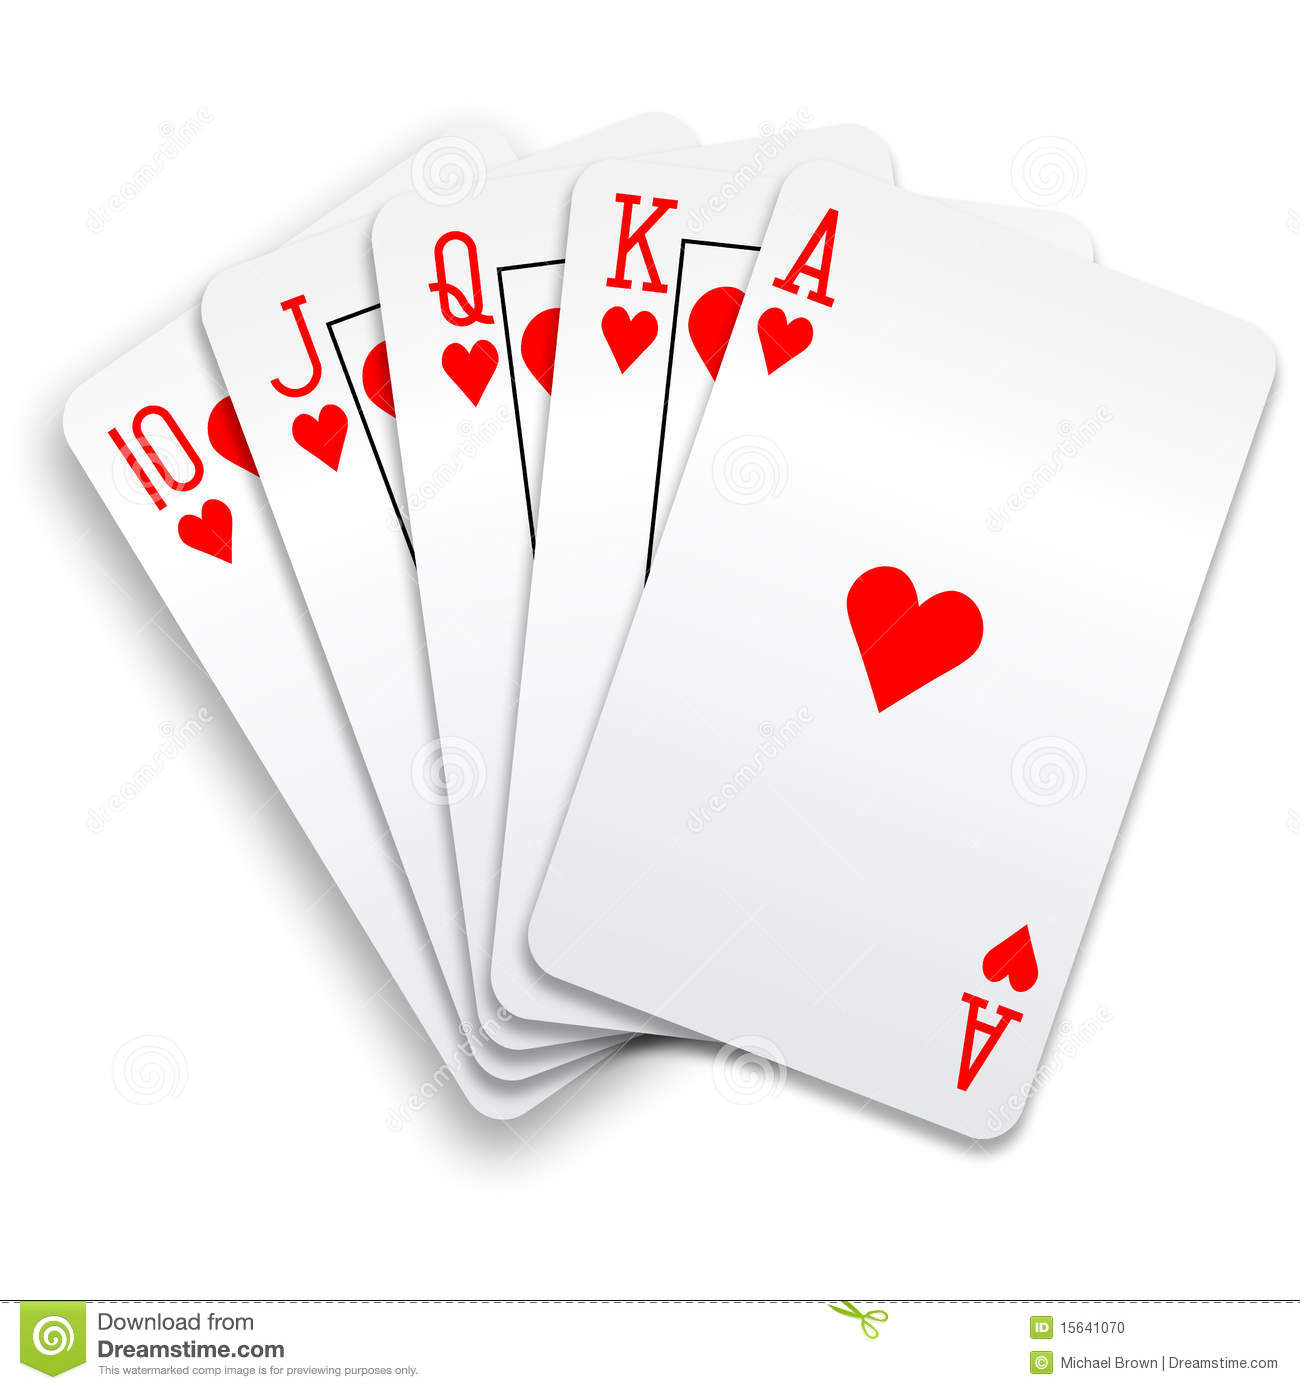 Royal flush poker hand images video coaching poker